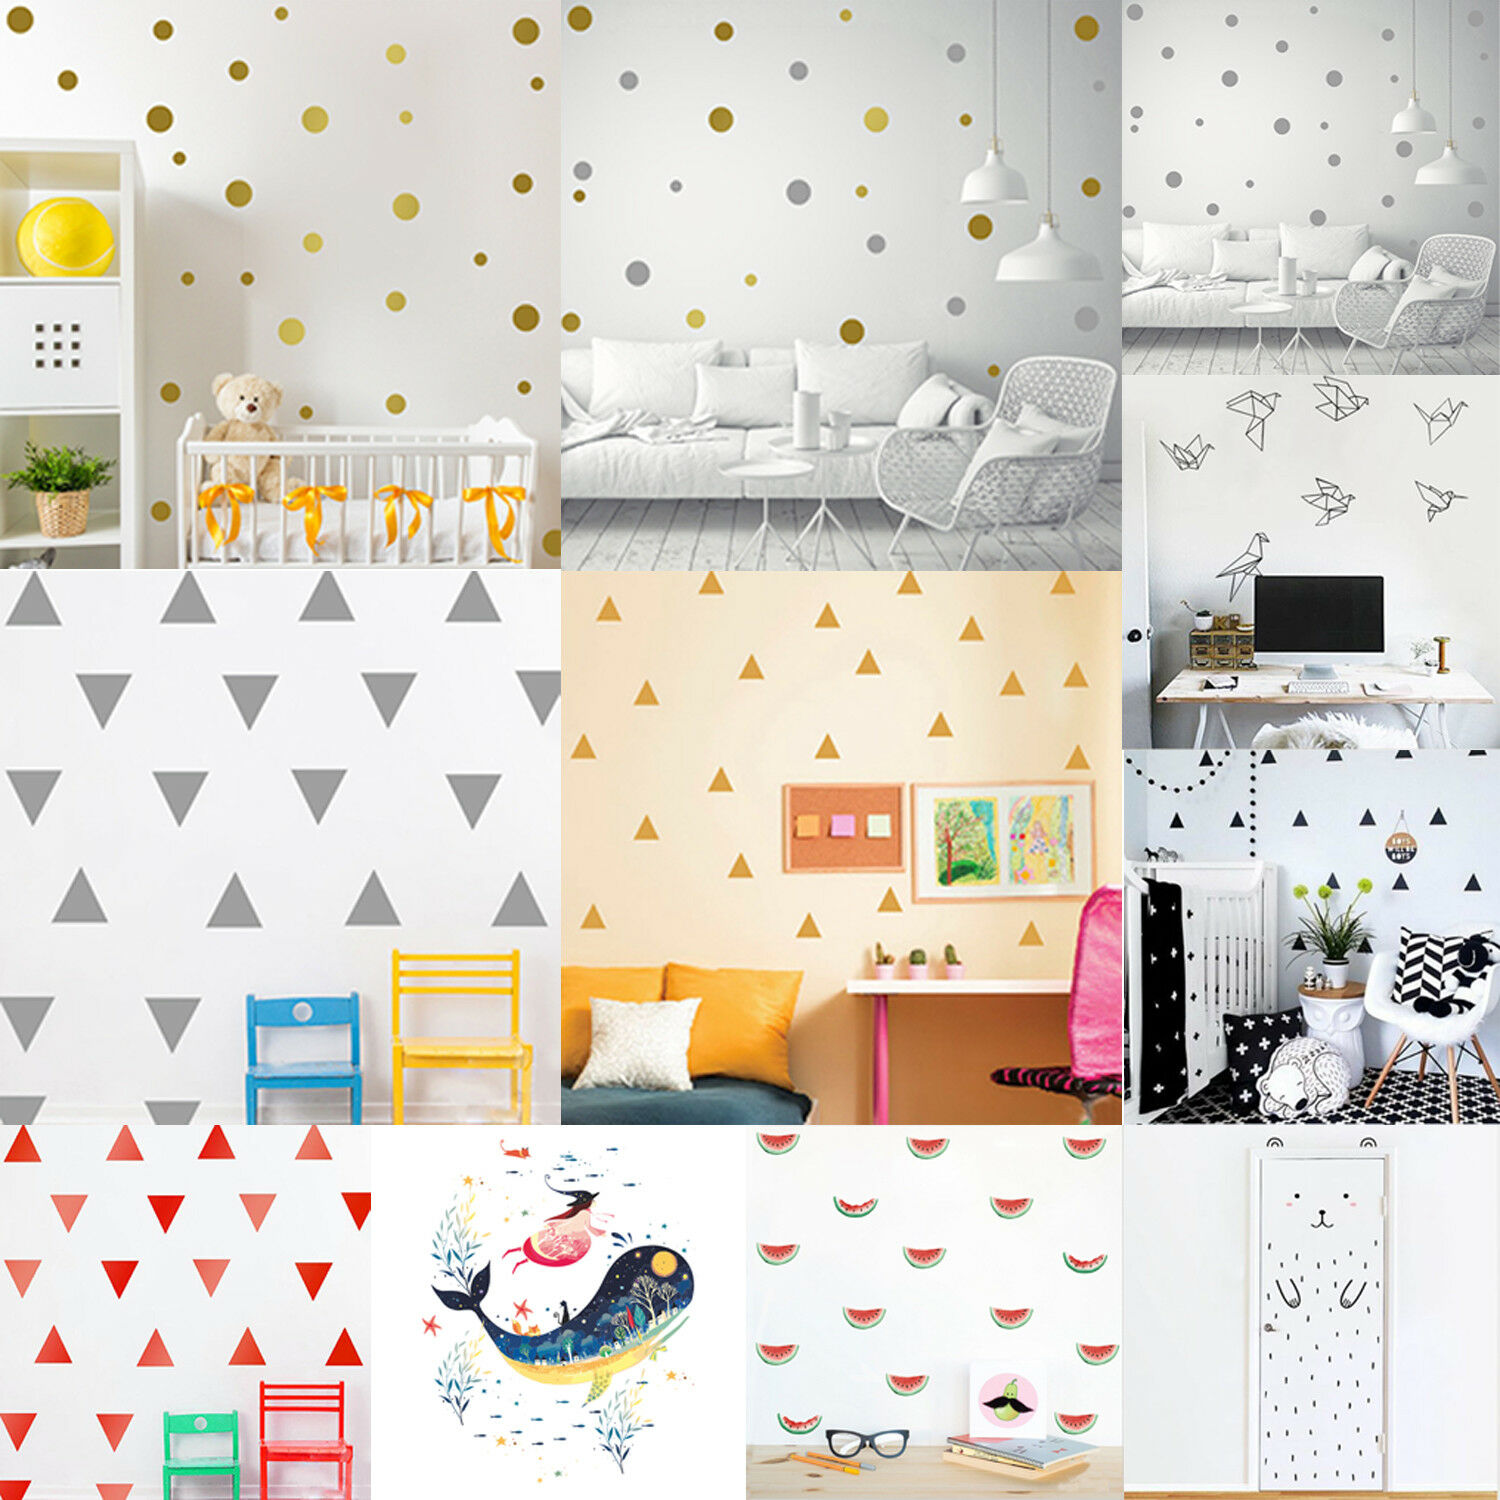 Home Decoration - Cute Mural Removable Wall Stickers Decals Kids Baby Nursery Room Home Decoration